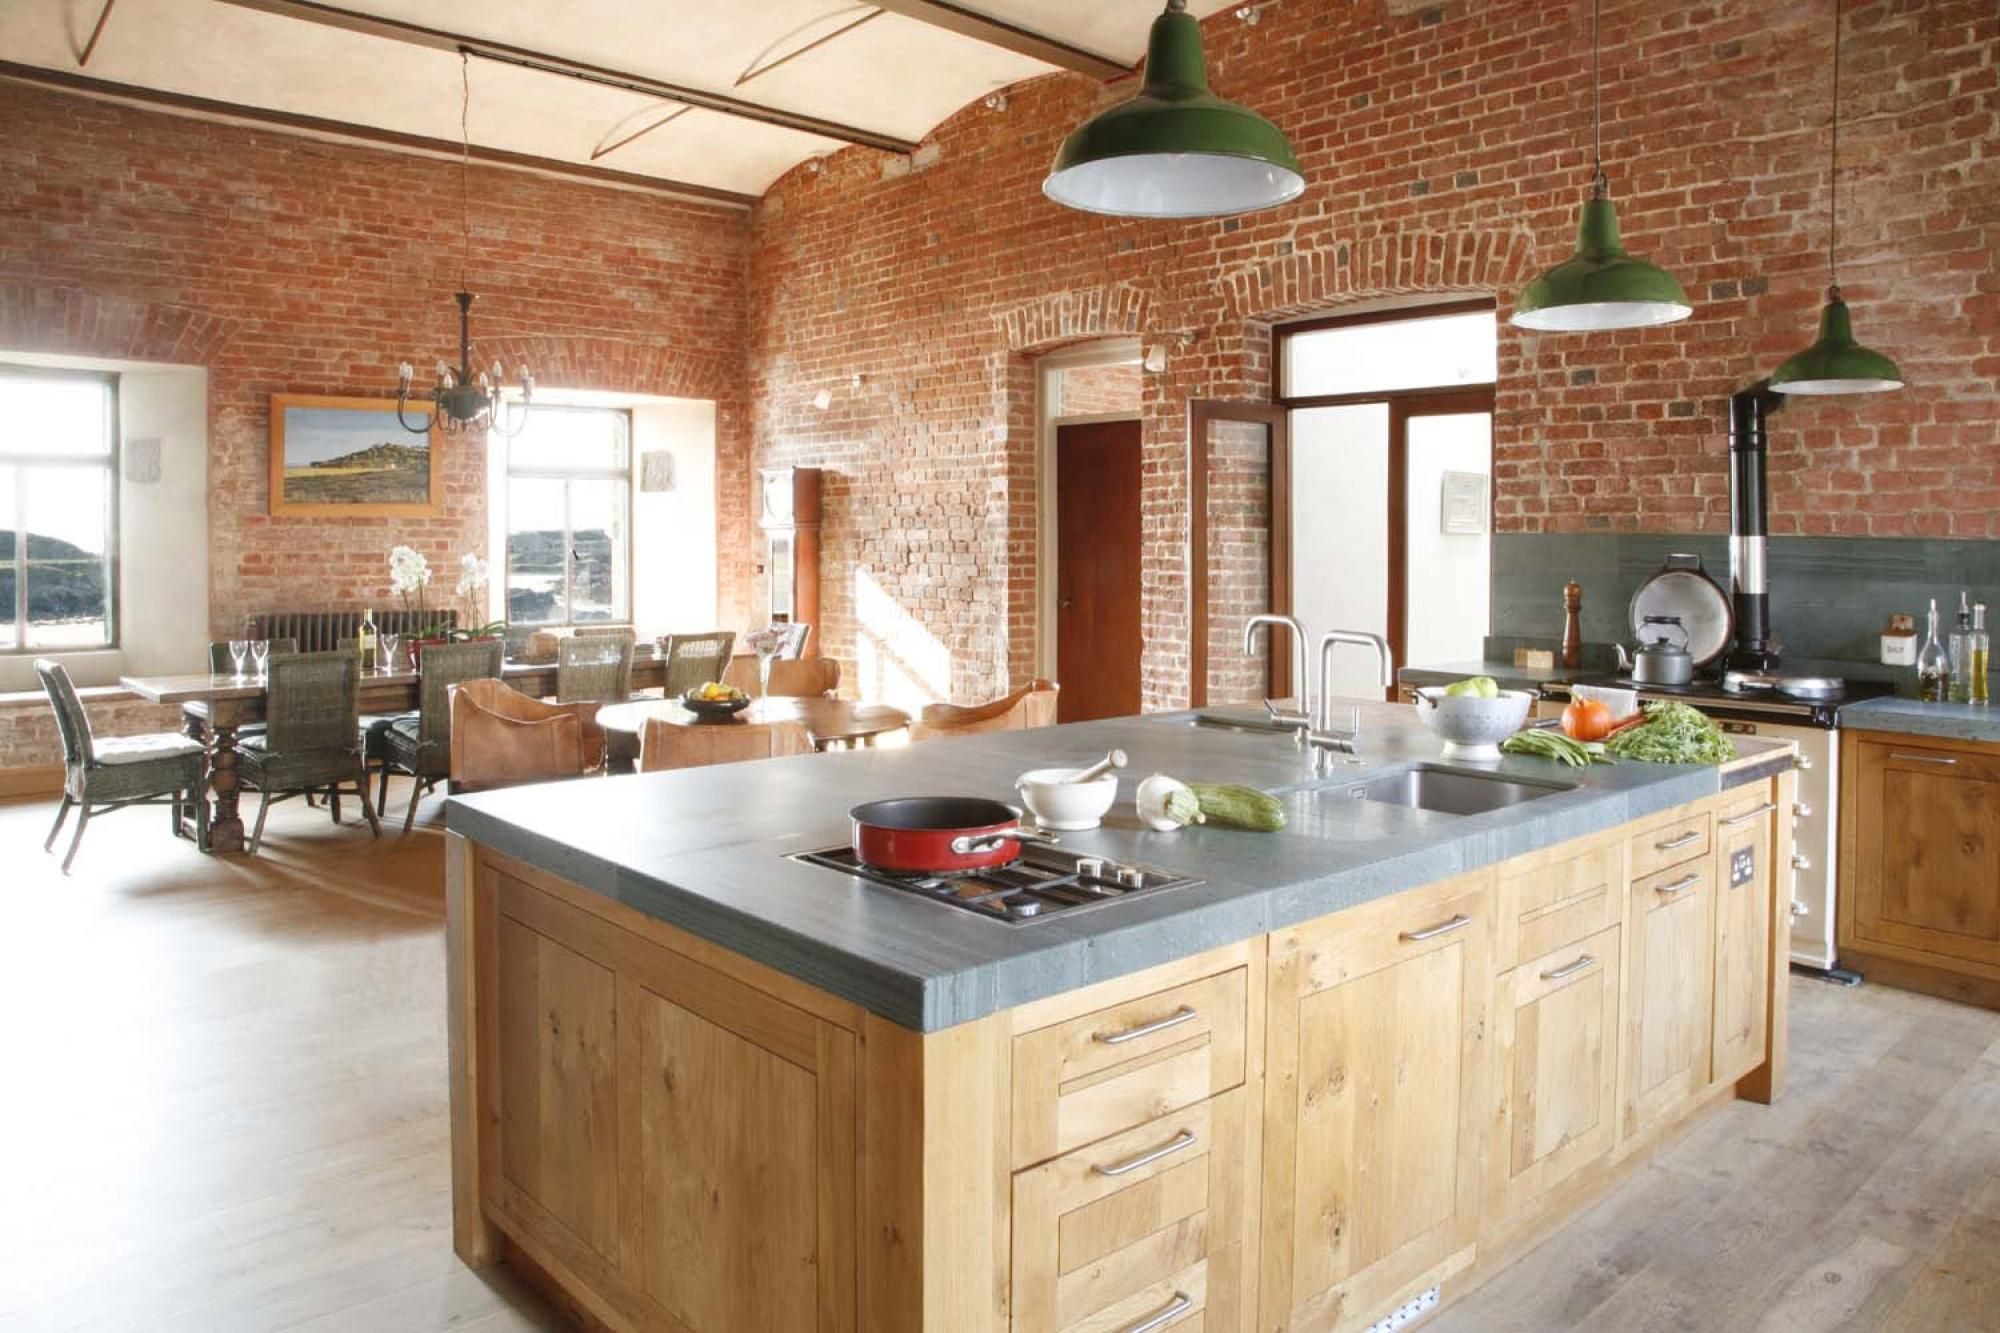 Solid Oak kitchen with English stone worktops Rustic